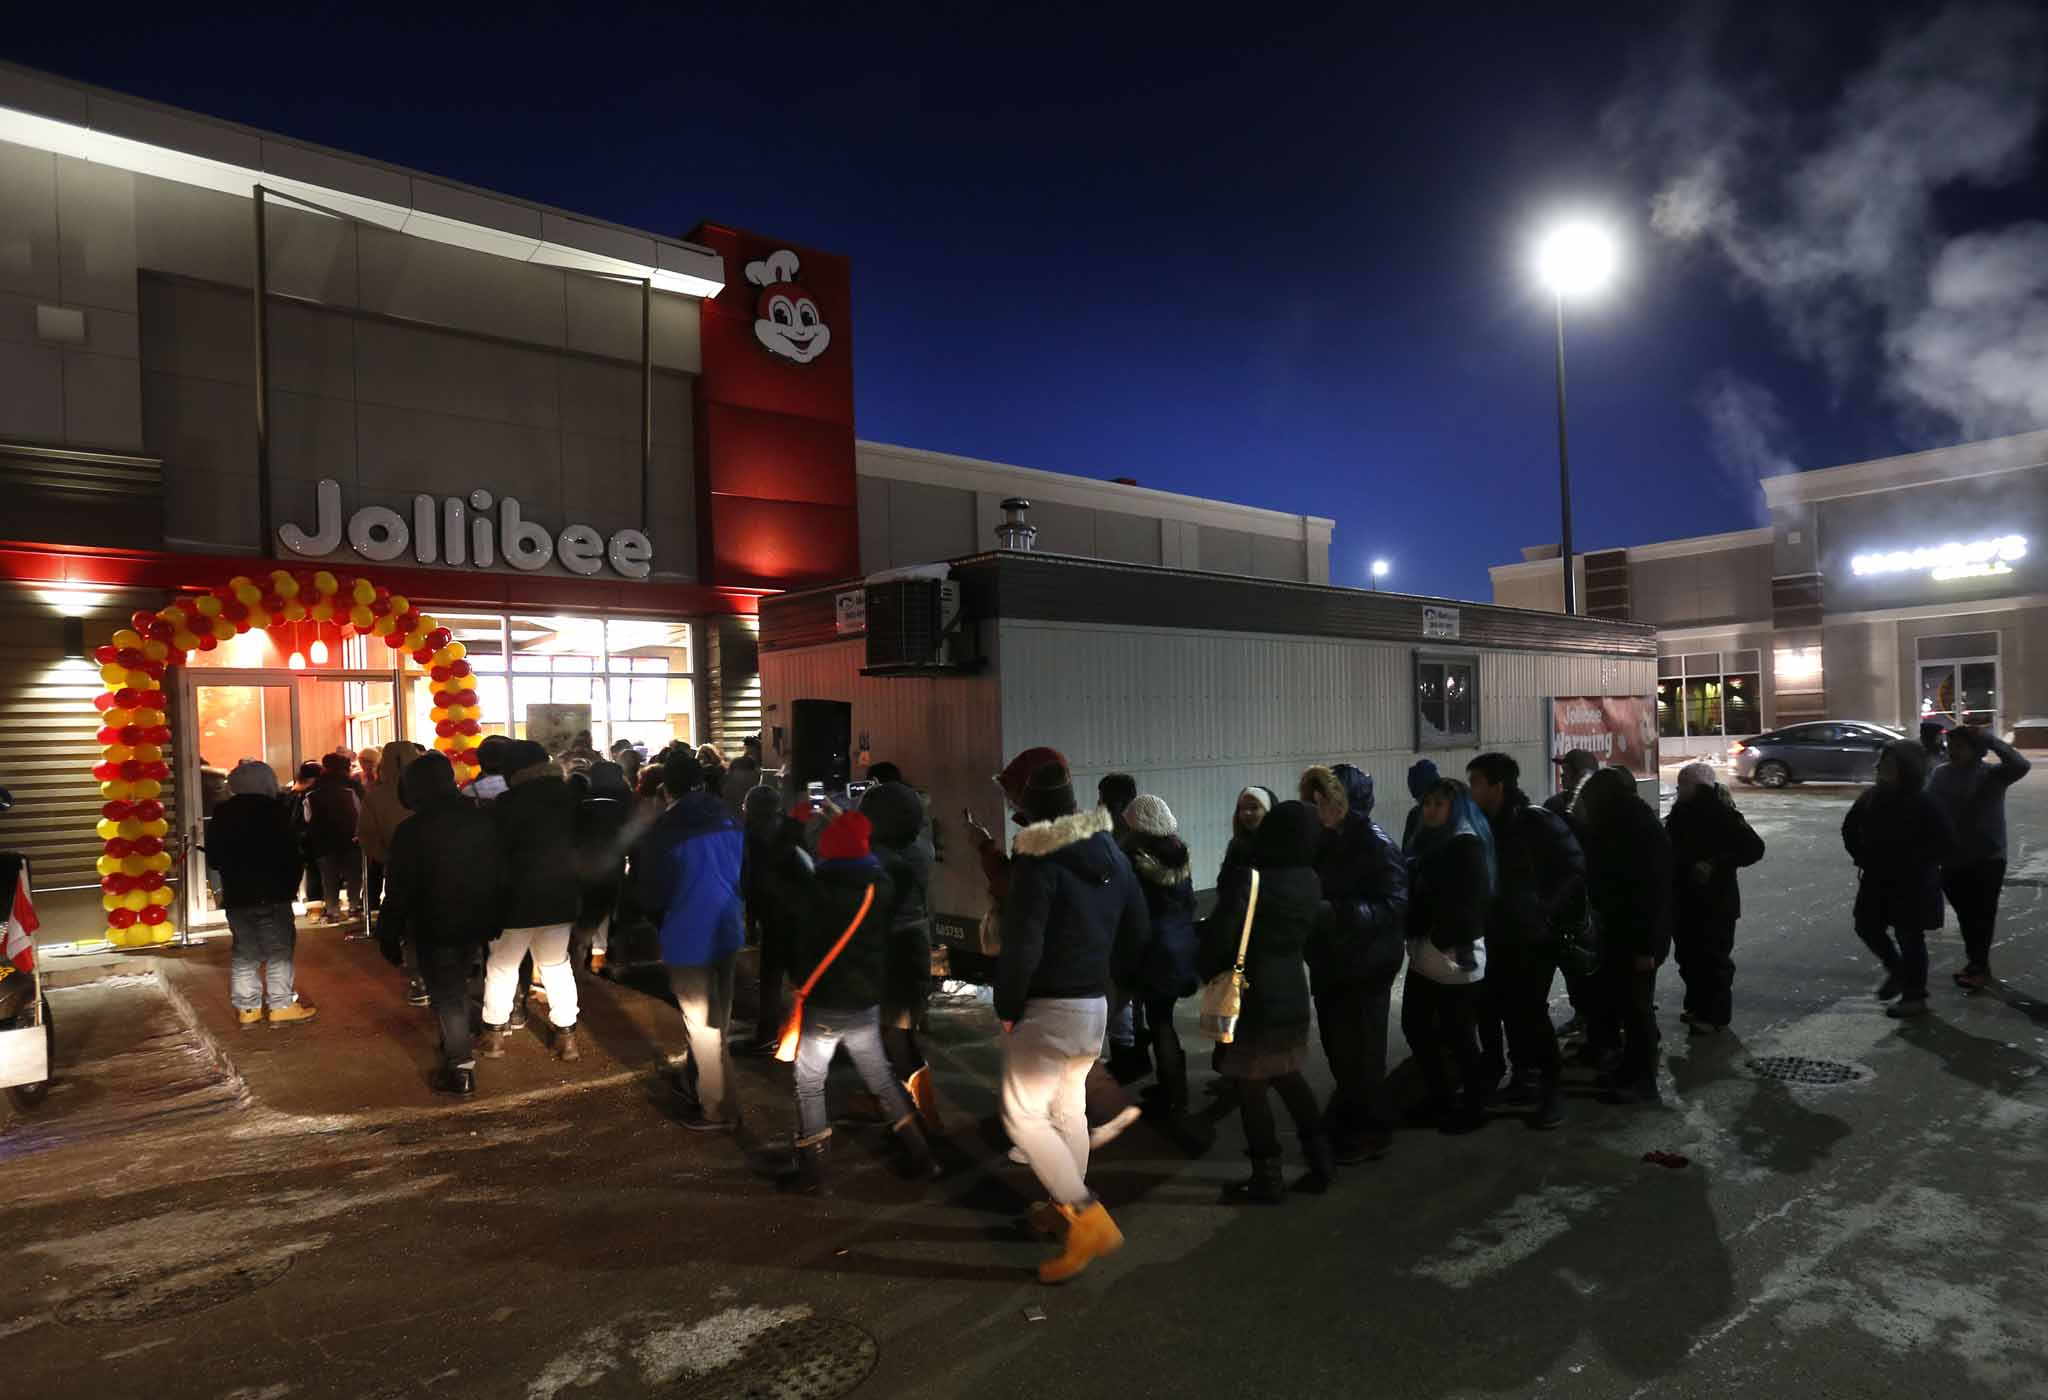 The company's first Canadian store on Ellice Avenue produced traffic jams and long line-ups when it opened in December 2016.